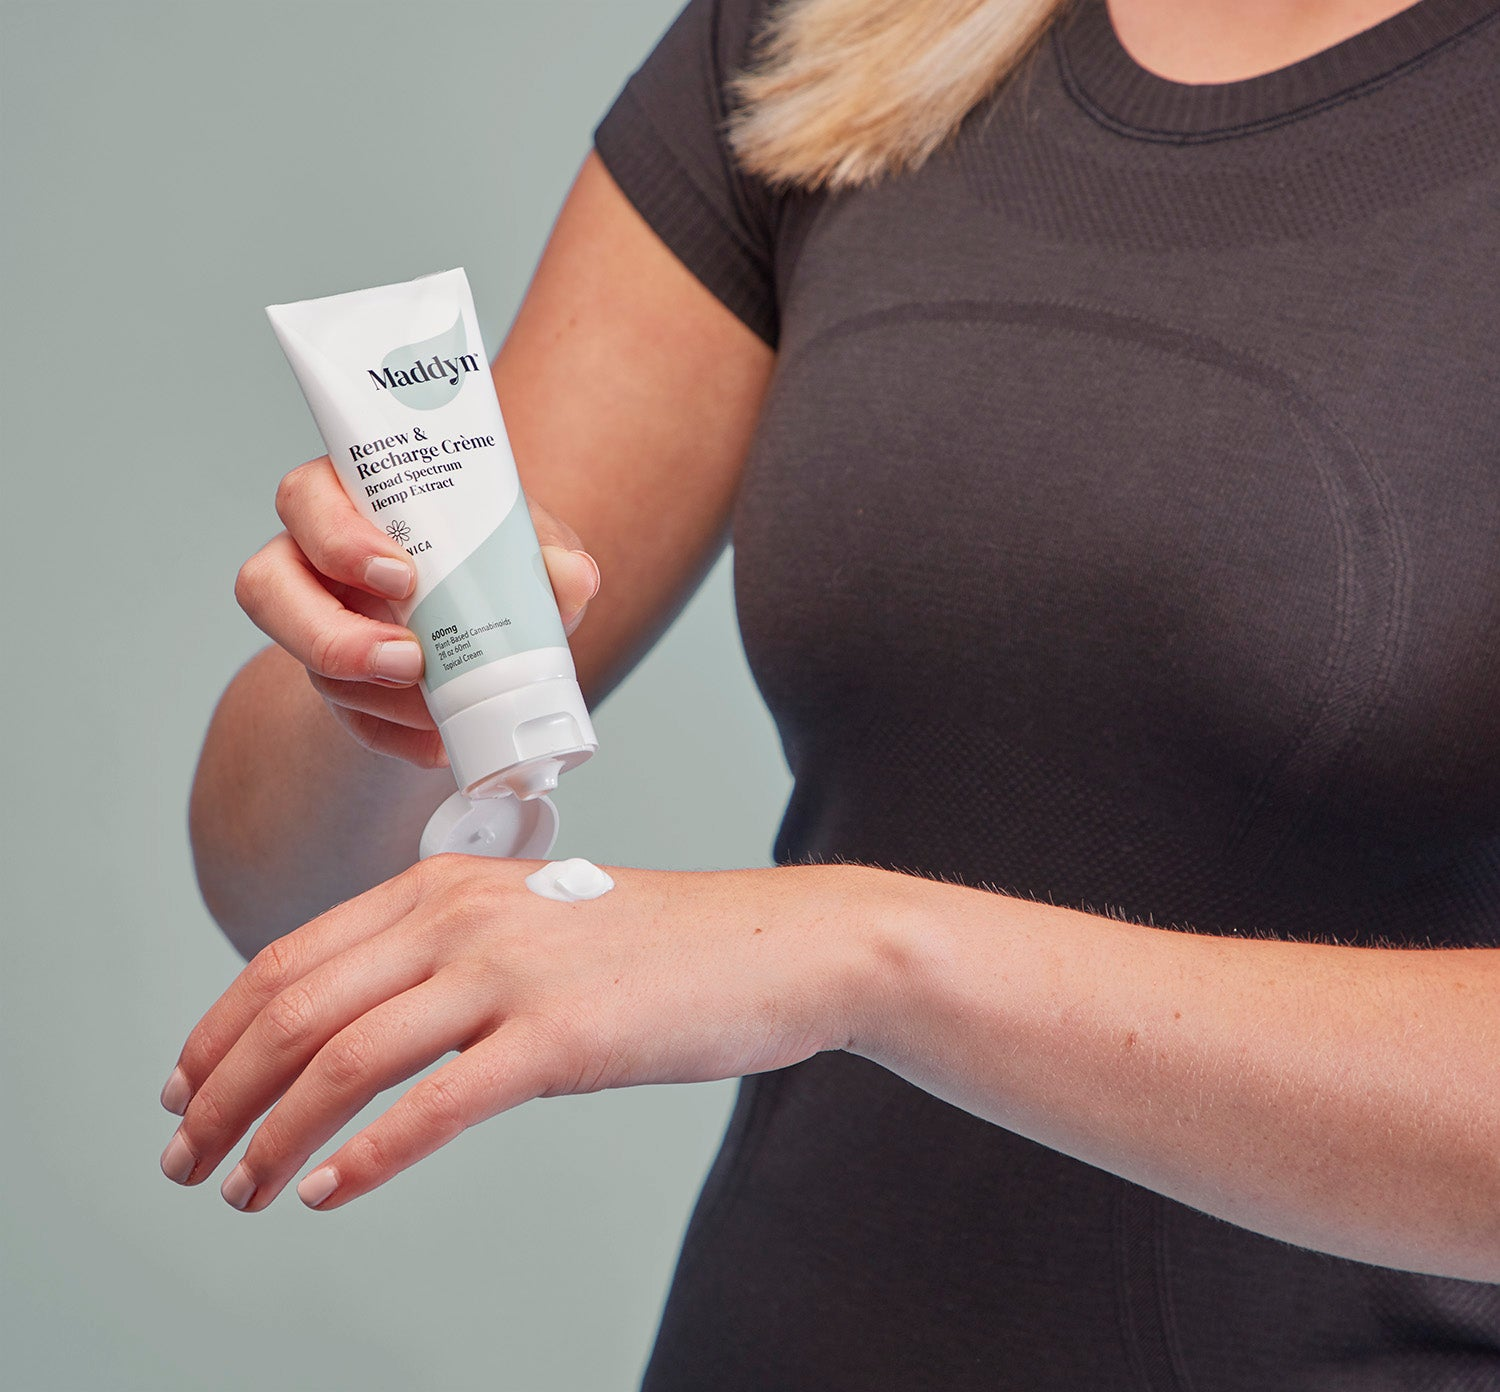 Woman using Maddyn topical CBD cream on hand